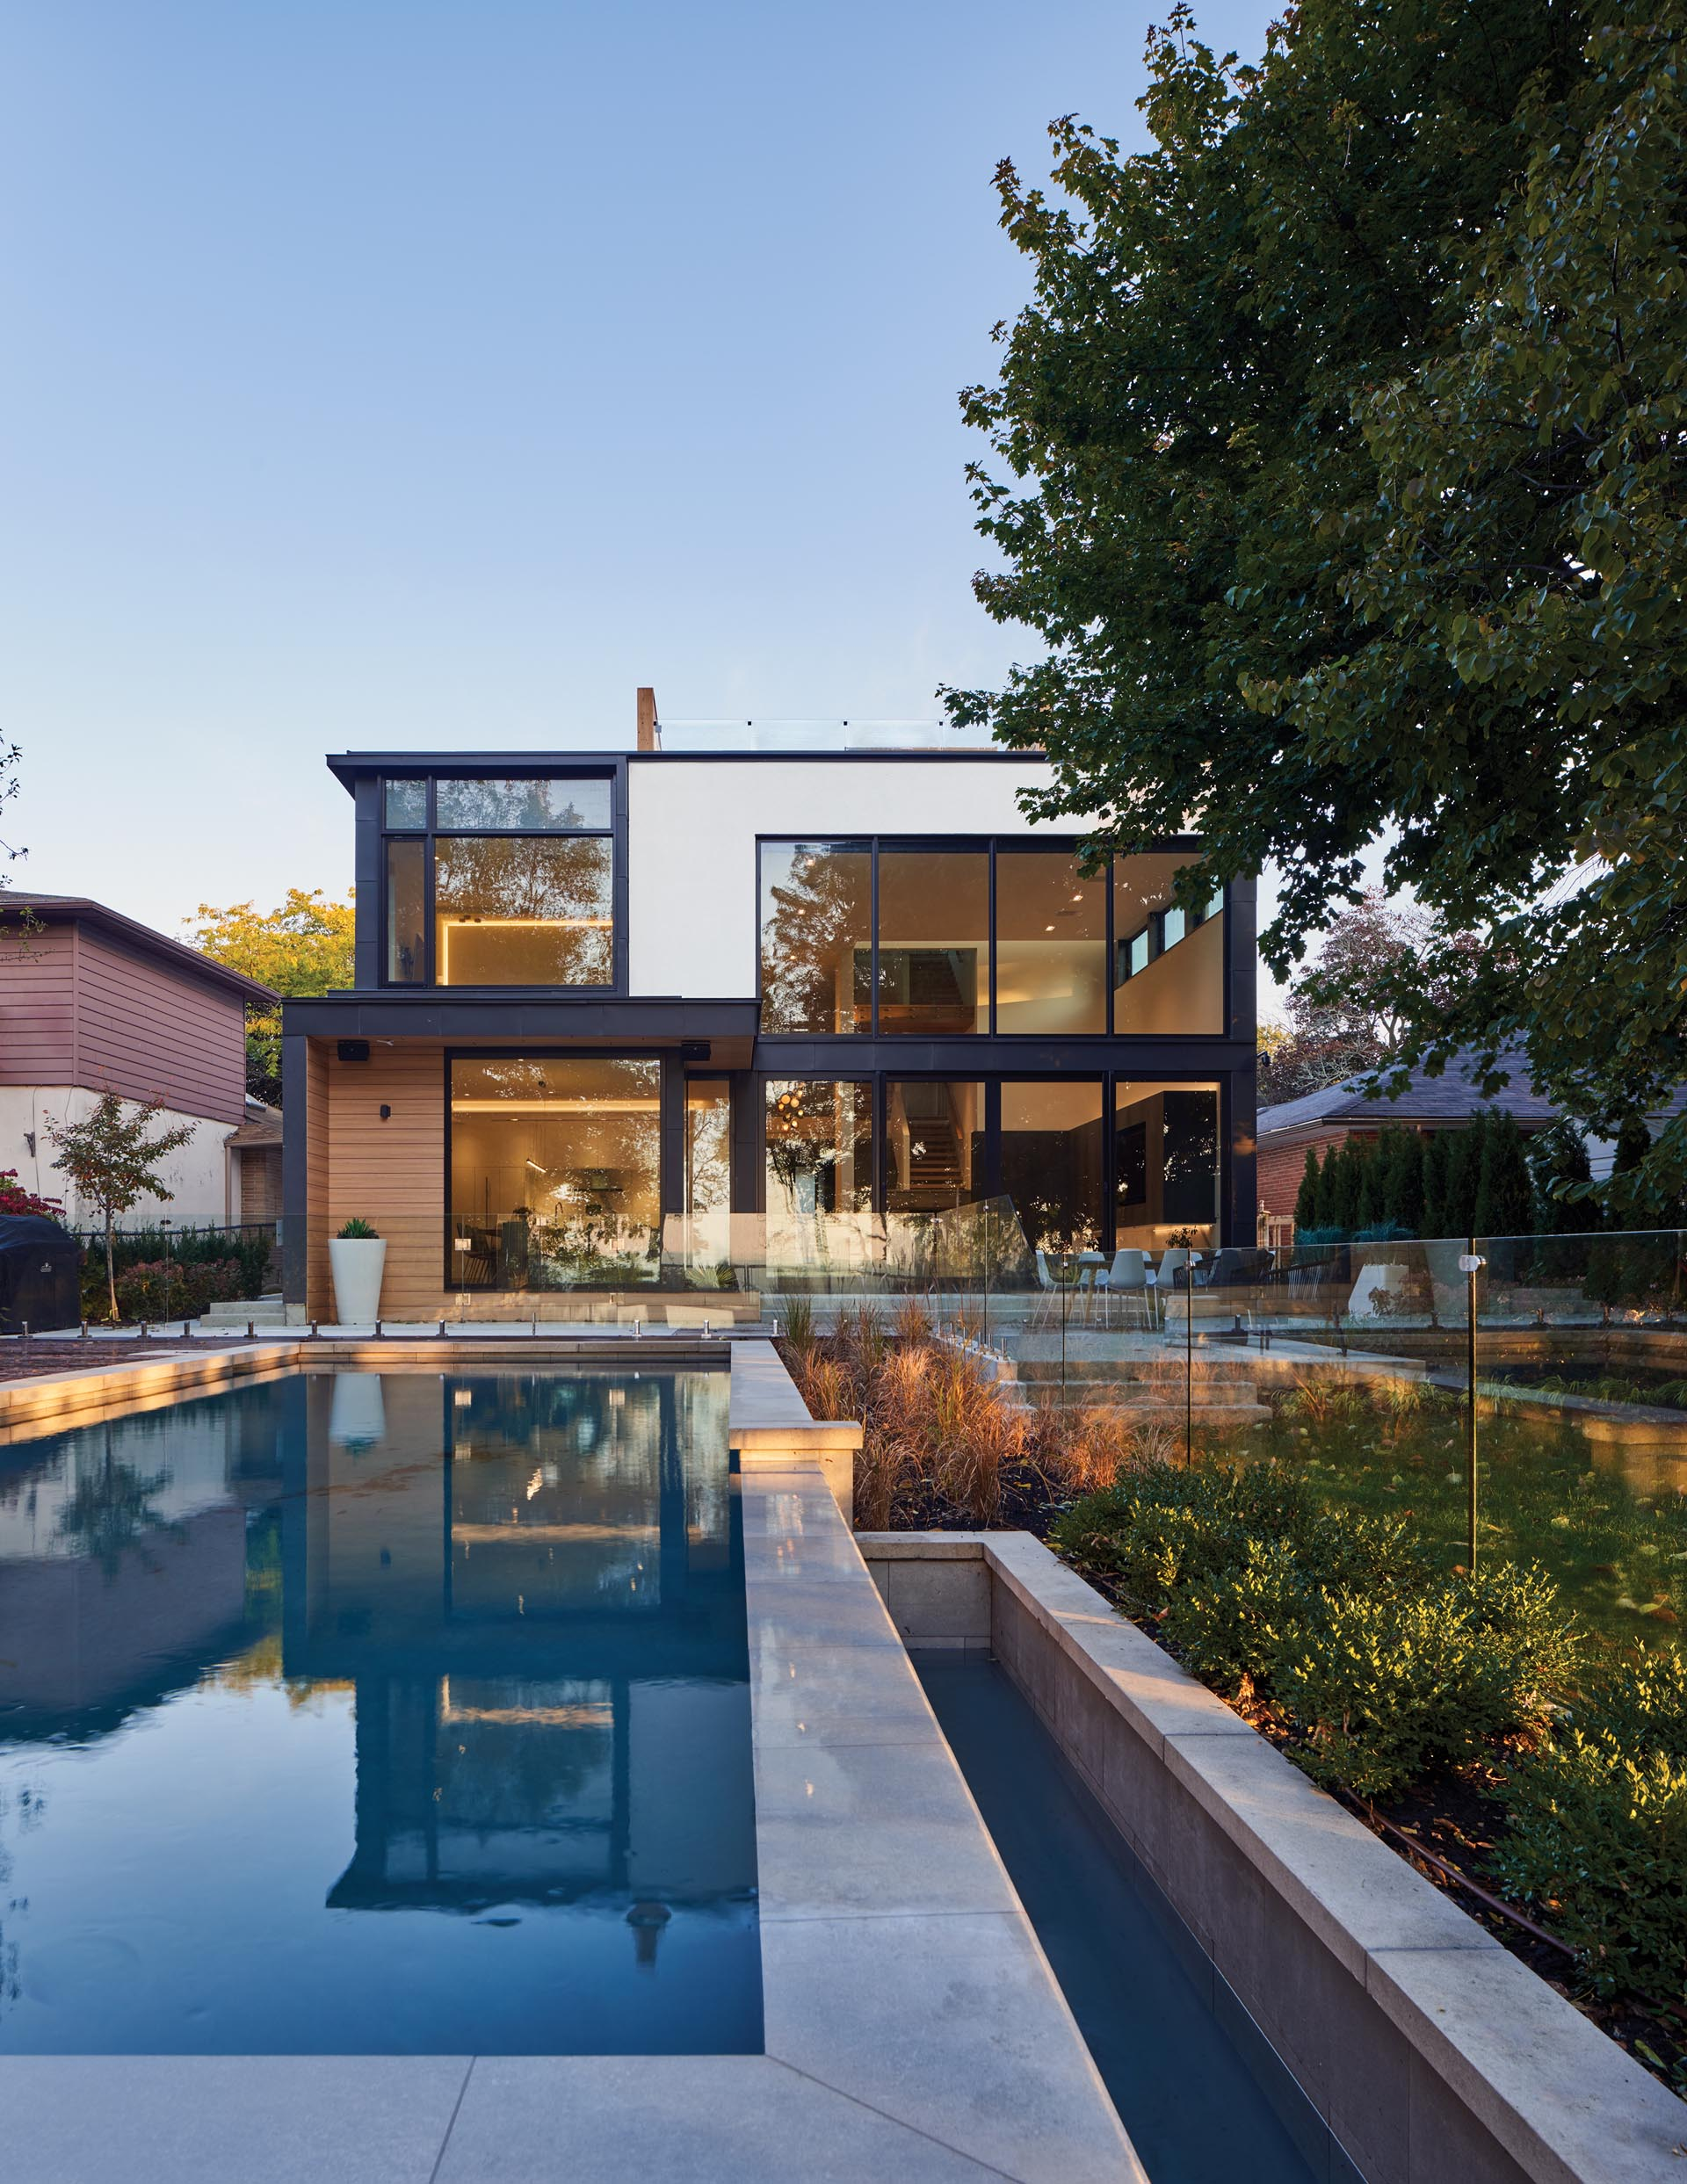 A modern house with double-height windows, a swimming pool, and a patio with room for outdoor dining.